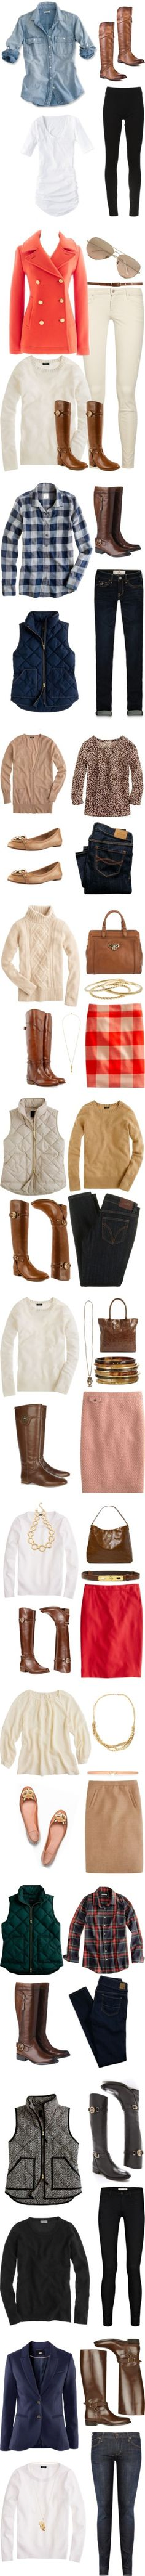 The best pieces for your perfect fall wardrobe!! Put this in my closet now! Please!!